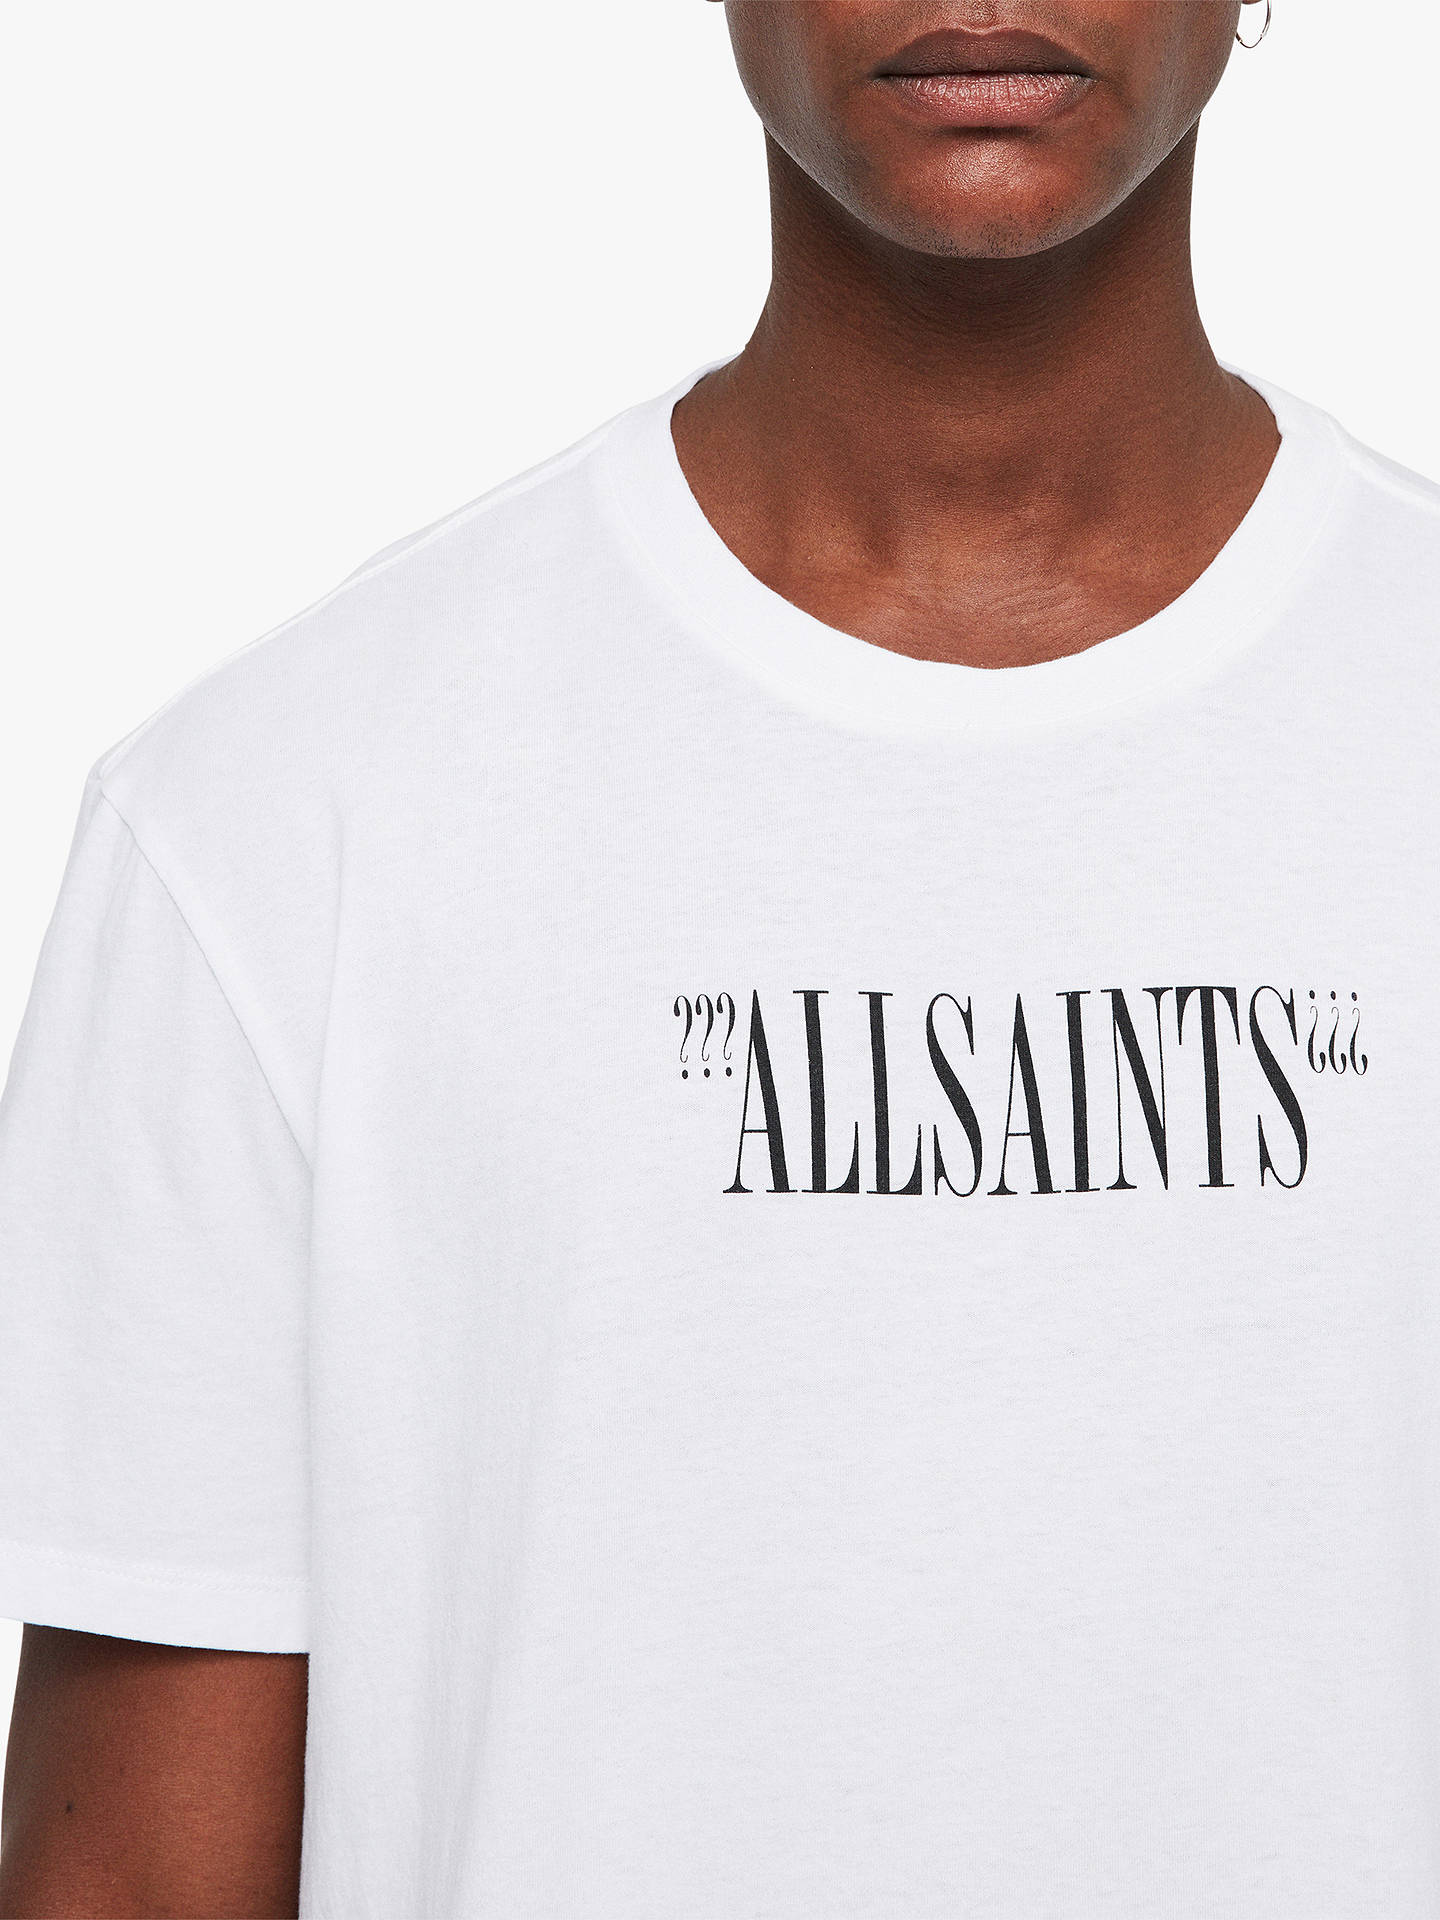 Buy AllSaints Brackets Short Sleeve Logo T-Shirt, Optic White/Black, L Online at johnlewis.com